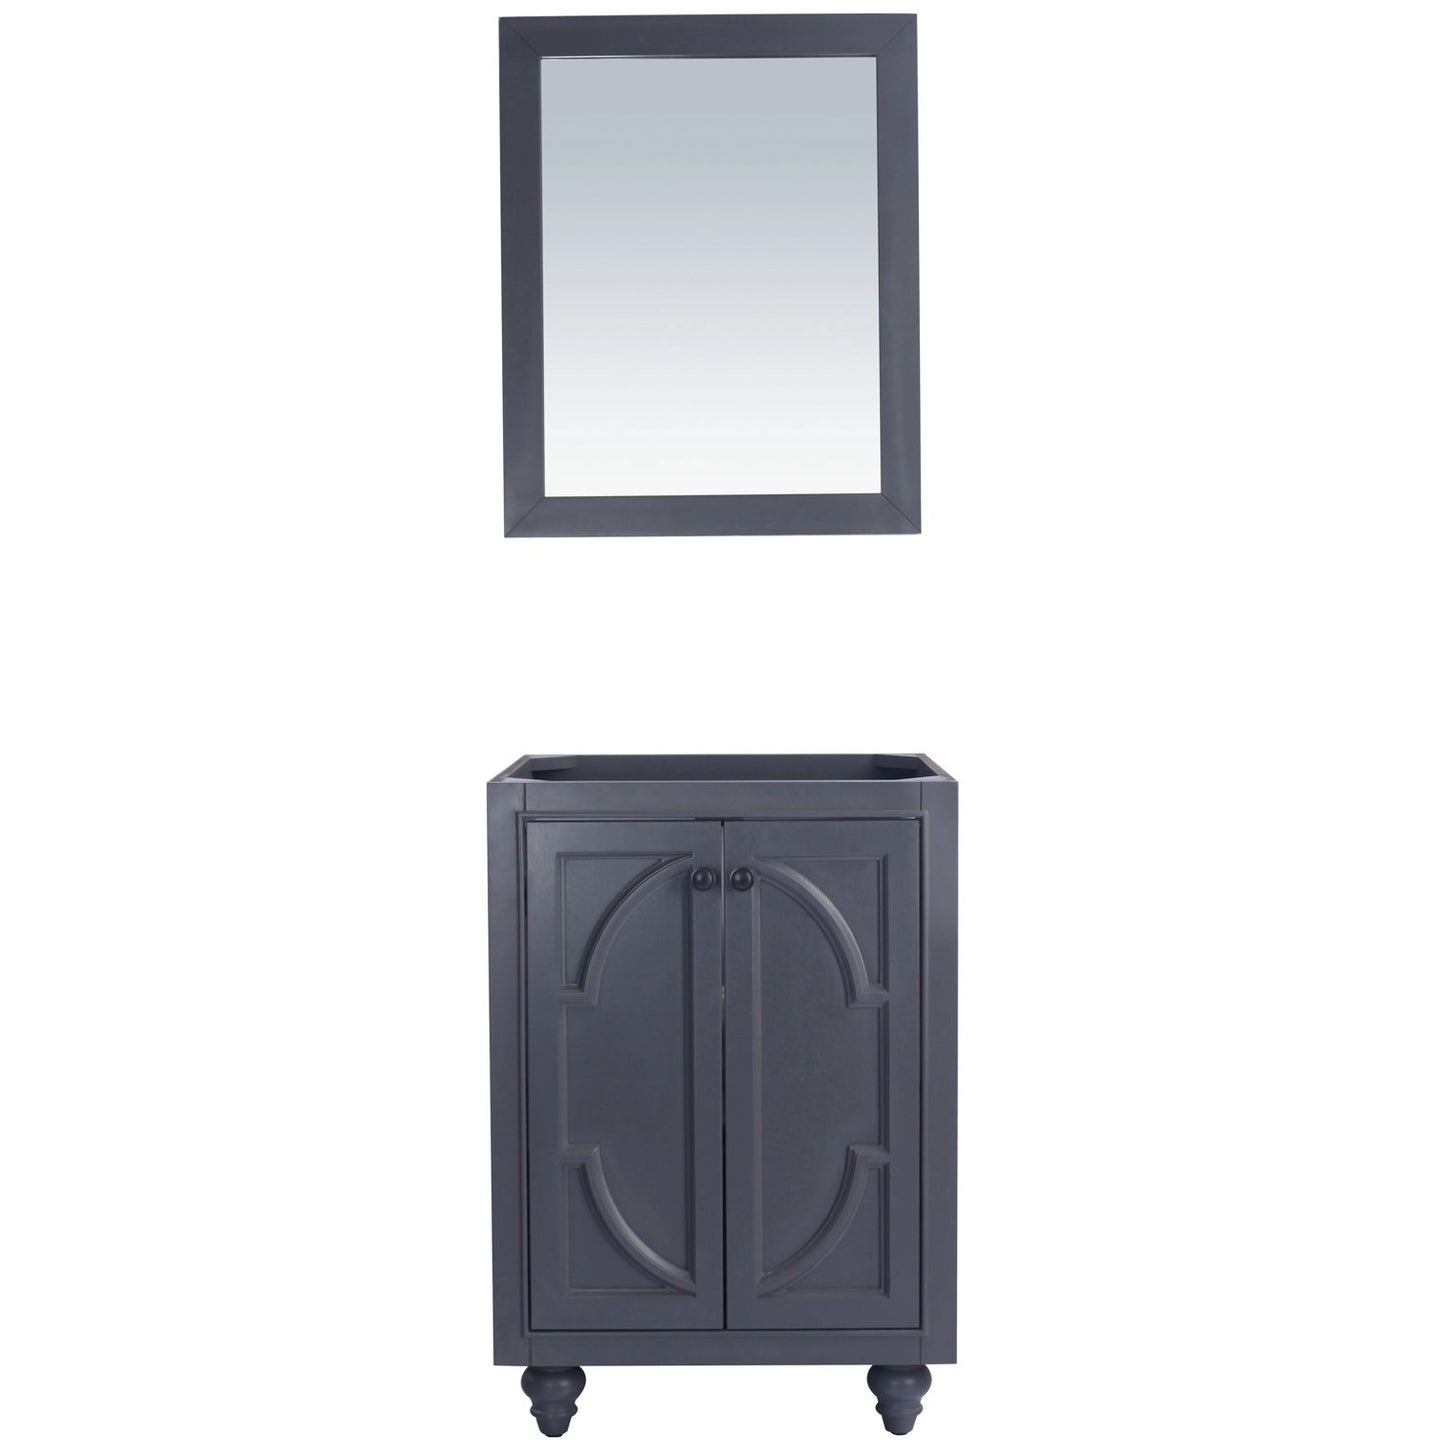 Odyssey - 24 - Maple Grey Vanity Cabinet by Laviva